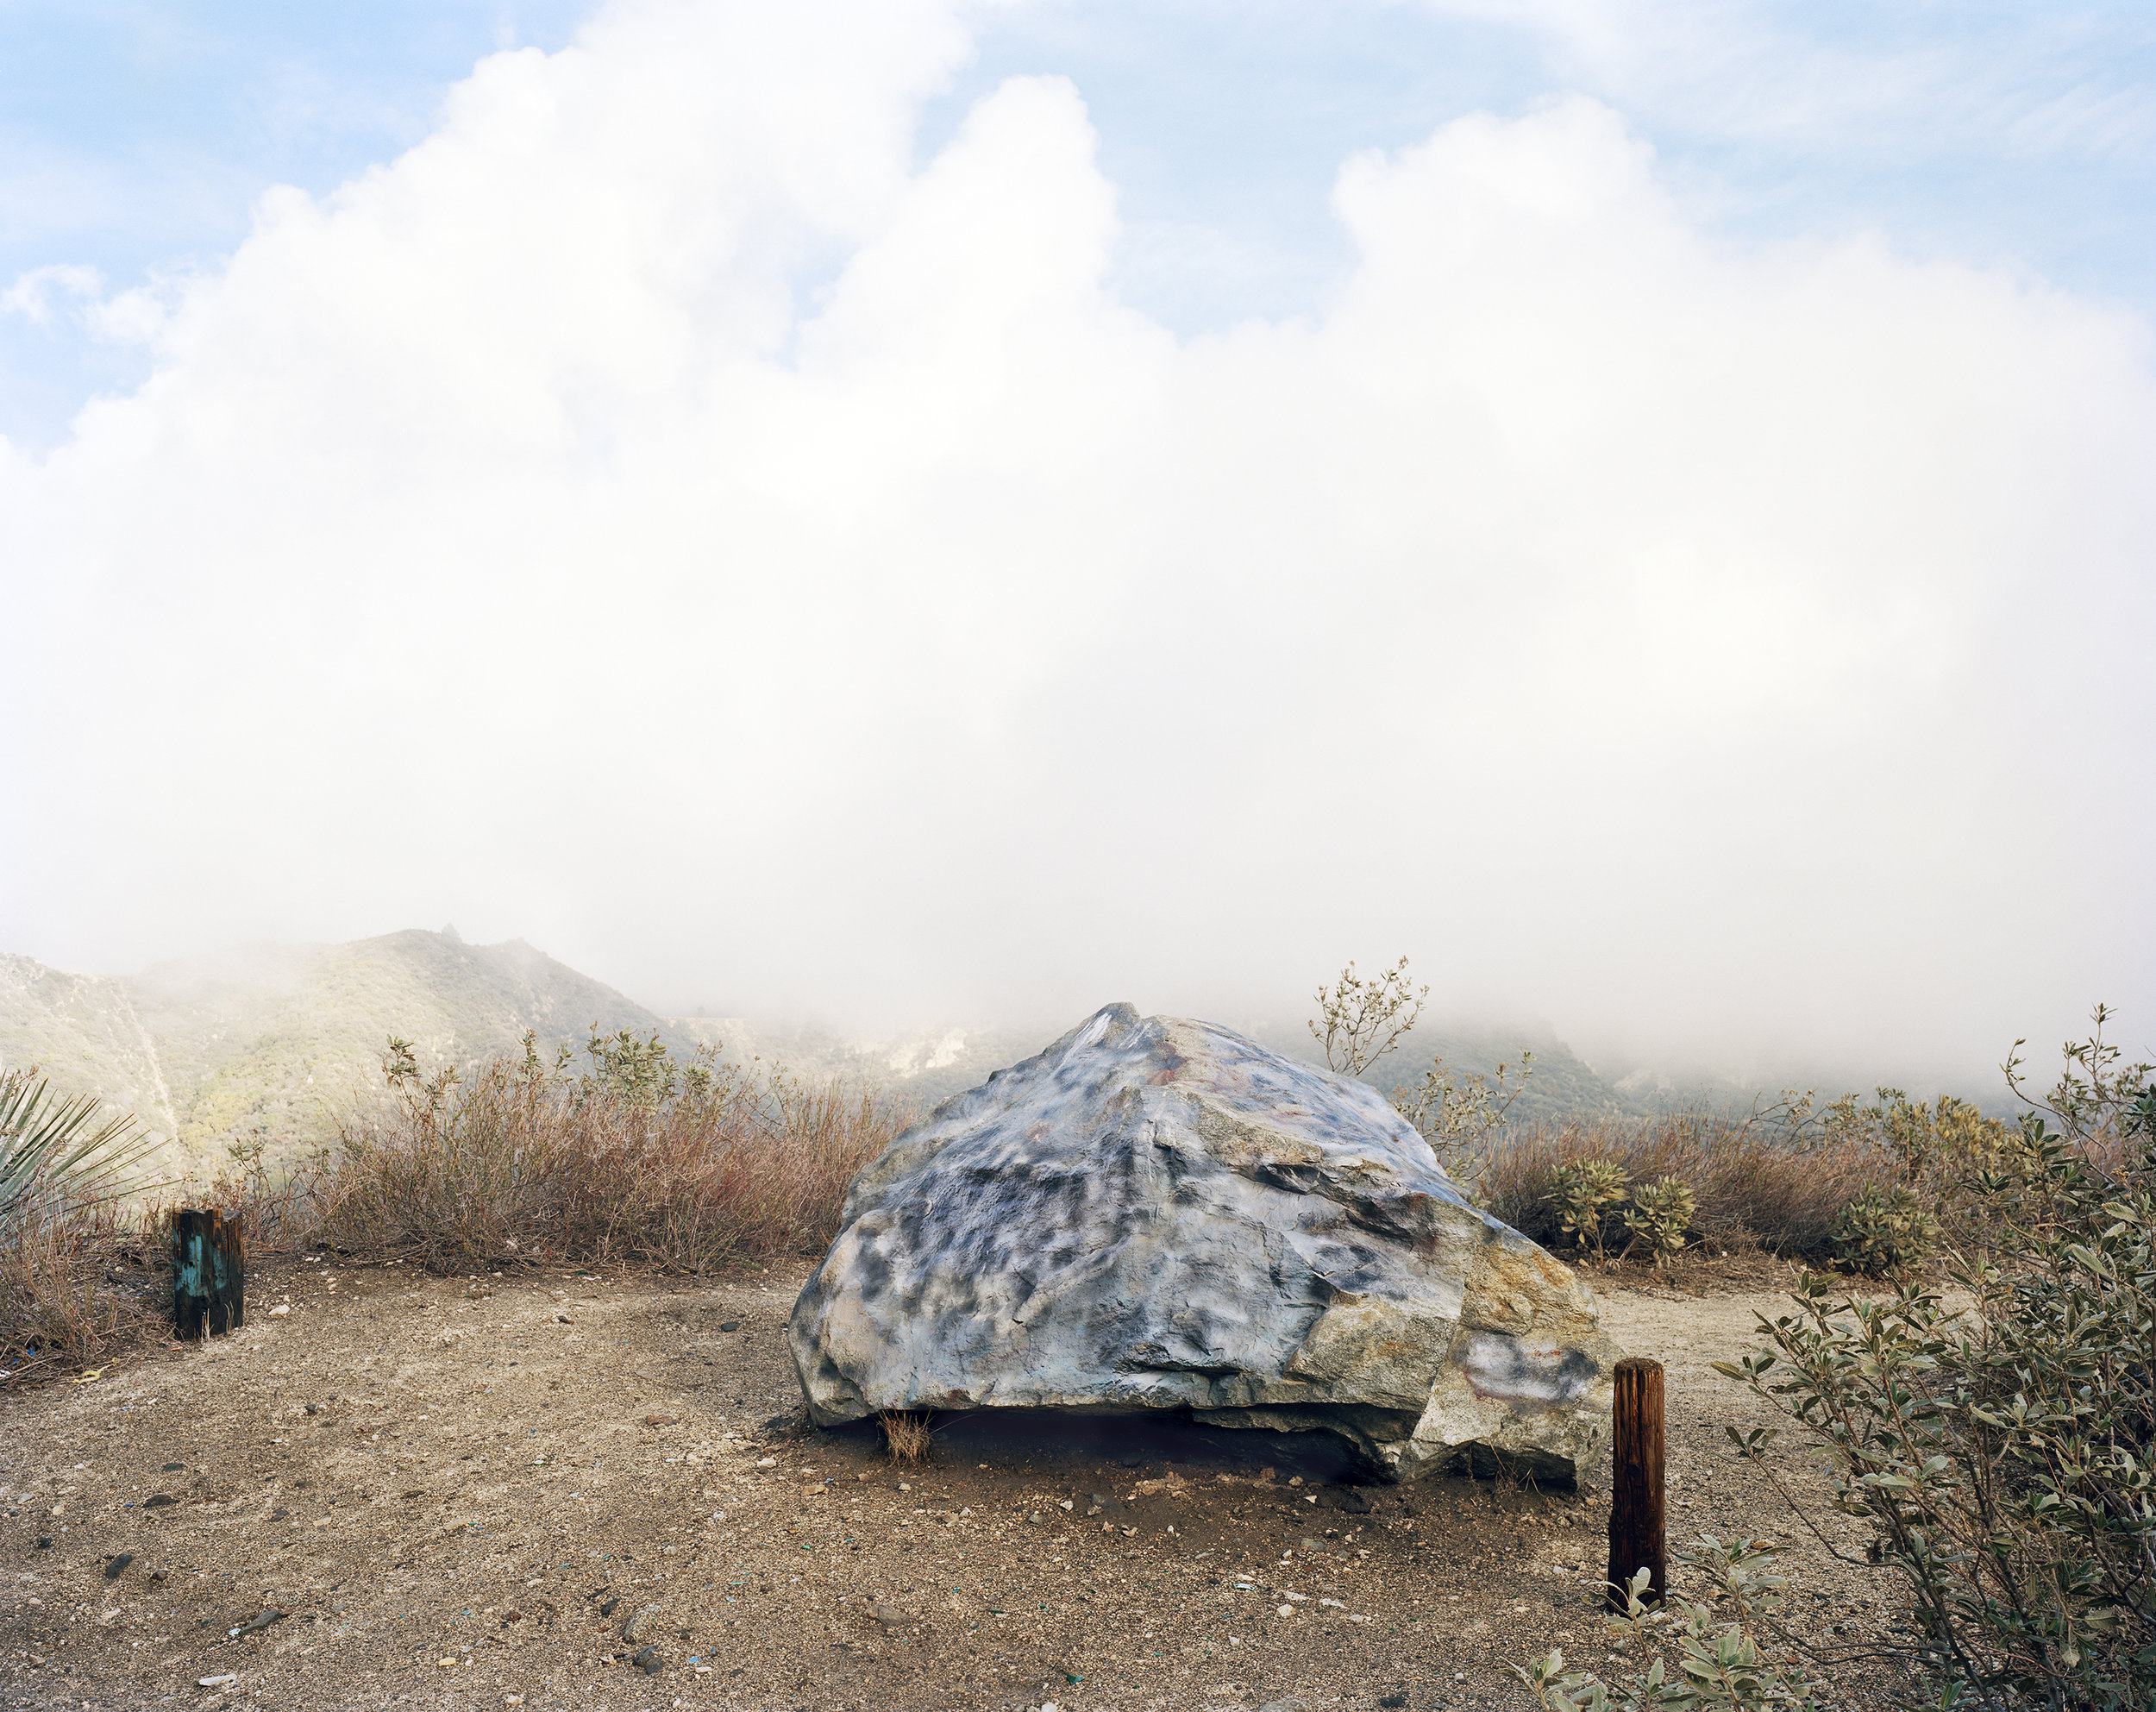 Cover-up , 2010 Archival pigment print 40 x 50 inches   ————